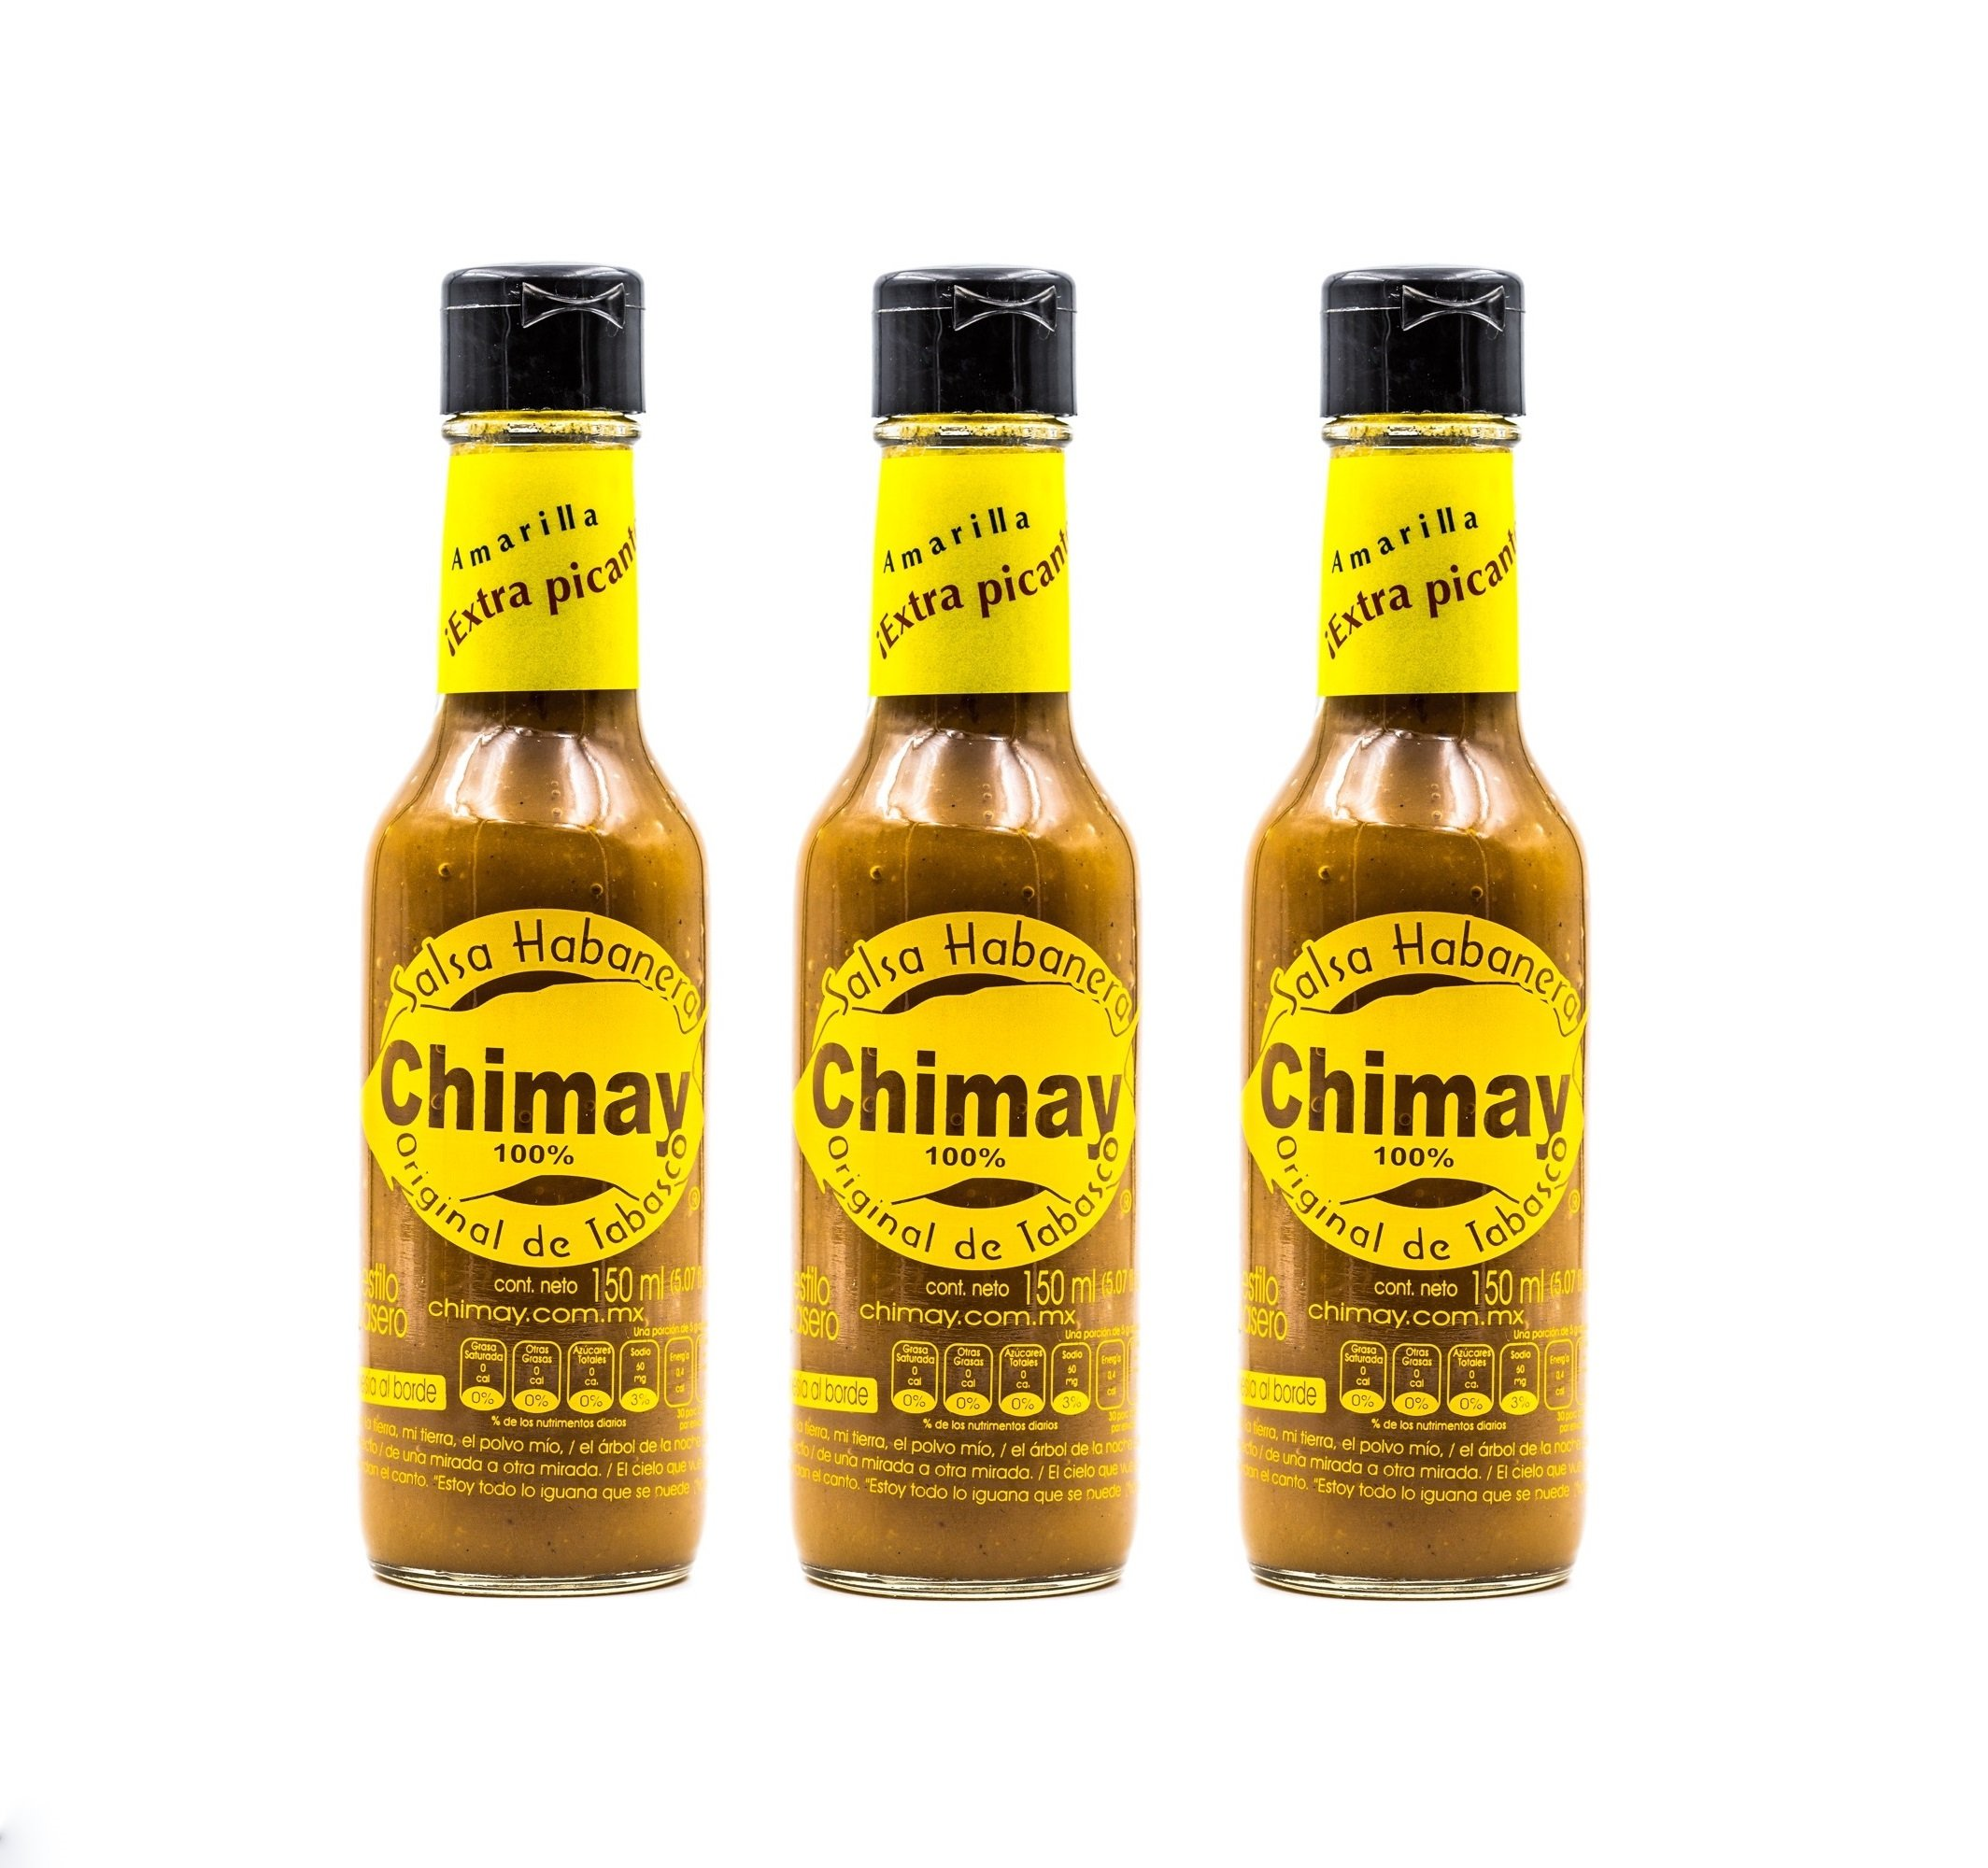 Amazon.com : Chimay Habanero Sauce Extra Hot - 5 Oz (Pack of 3) : Grocery & Gourmet Food